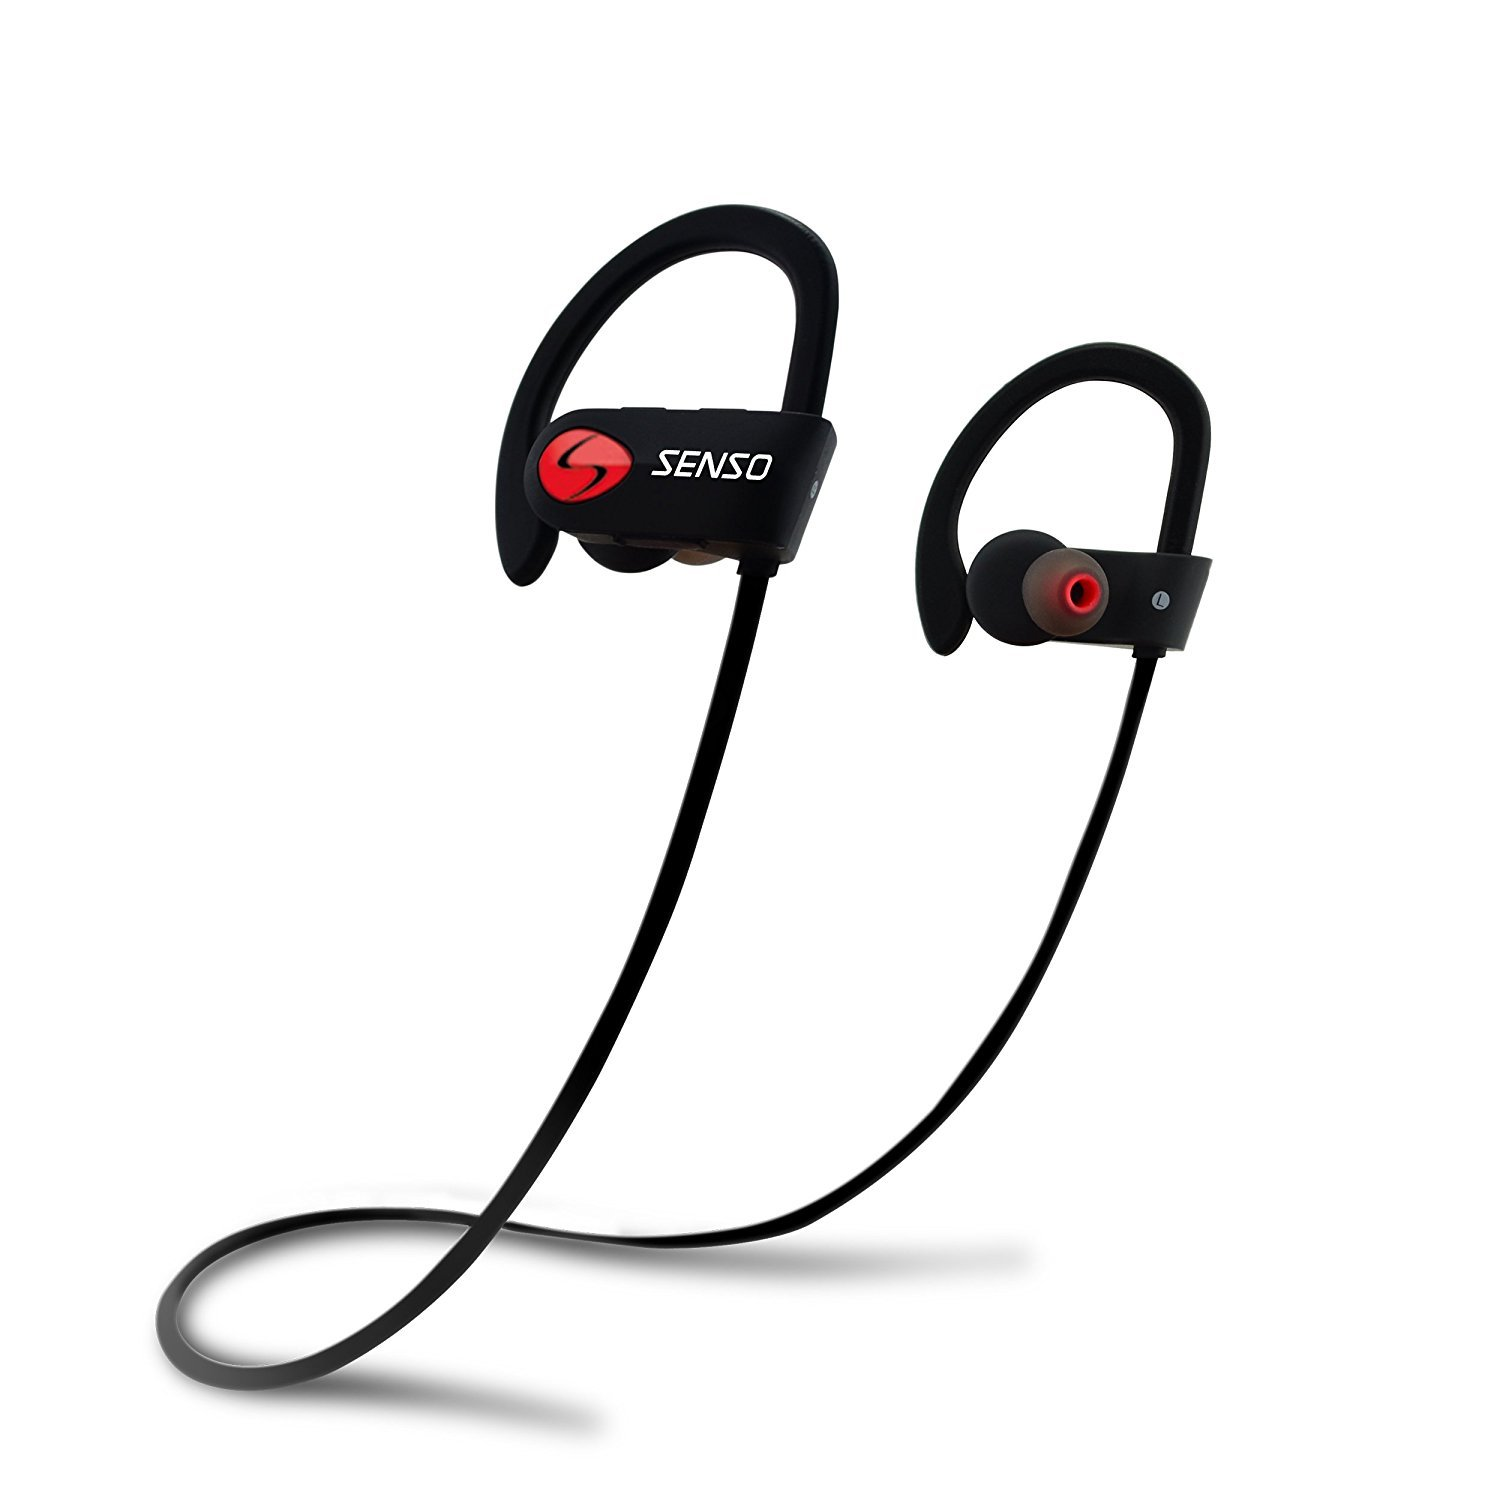 1a519567543 SENSO Bluetooth Headphones, Best Wireless Sports Earphones w/Mic IPX7  Waterproof HD Stereo Sweatproof Earbuds for Gym Running Workout 8 Hour  Battery Noise ...